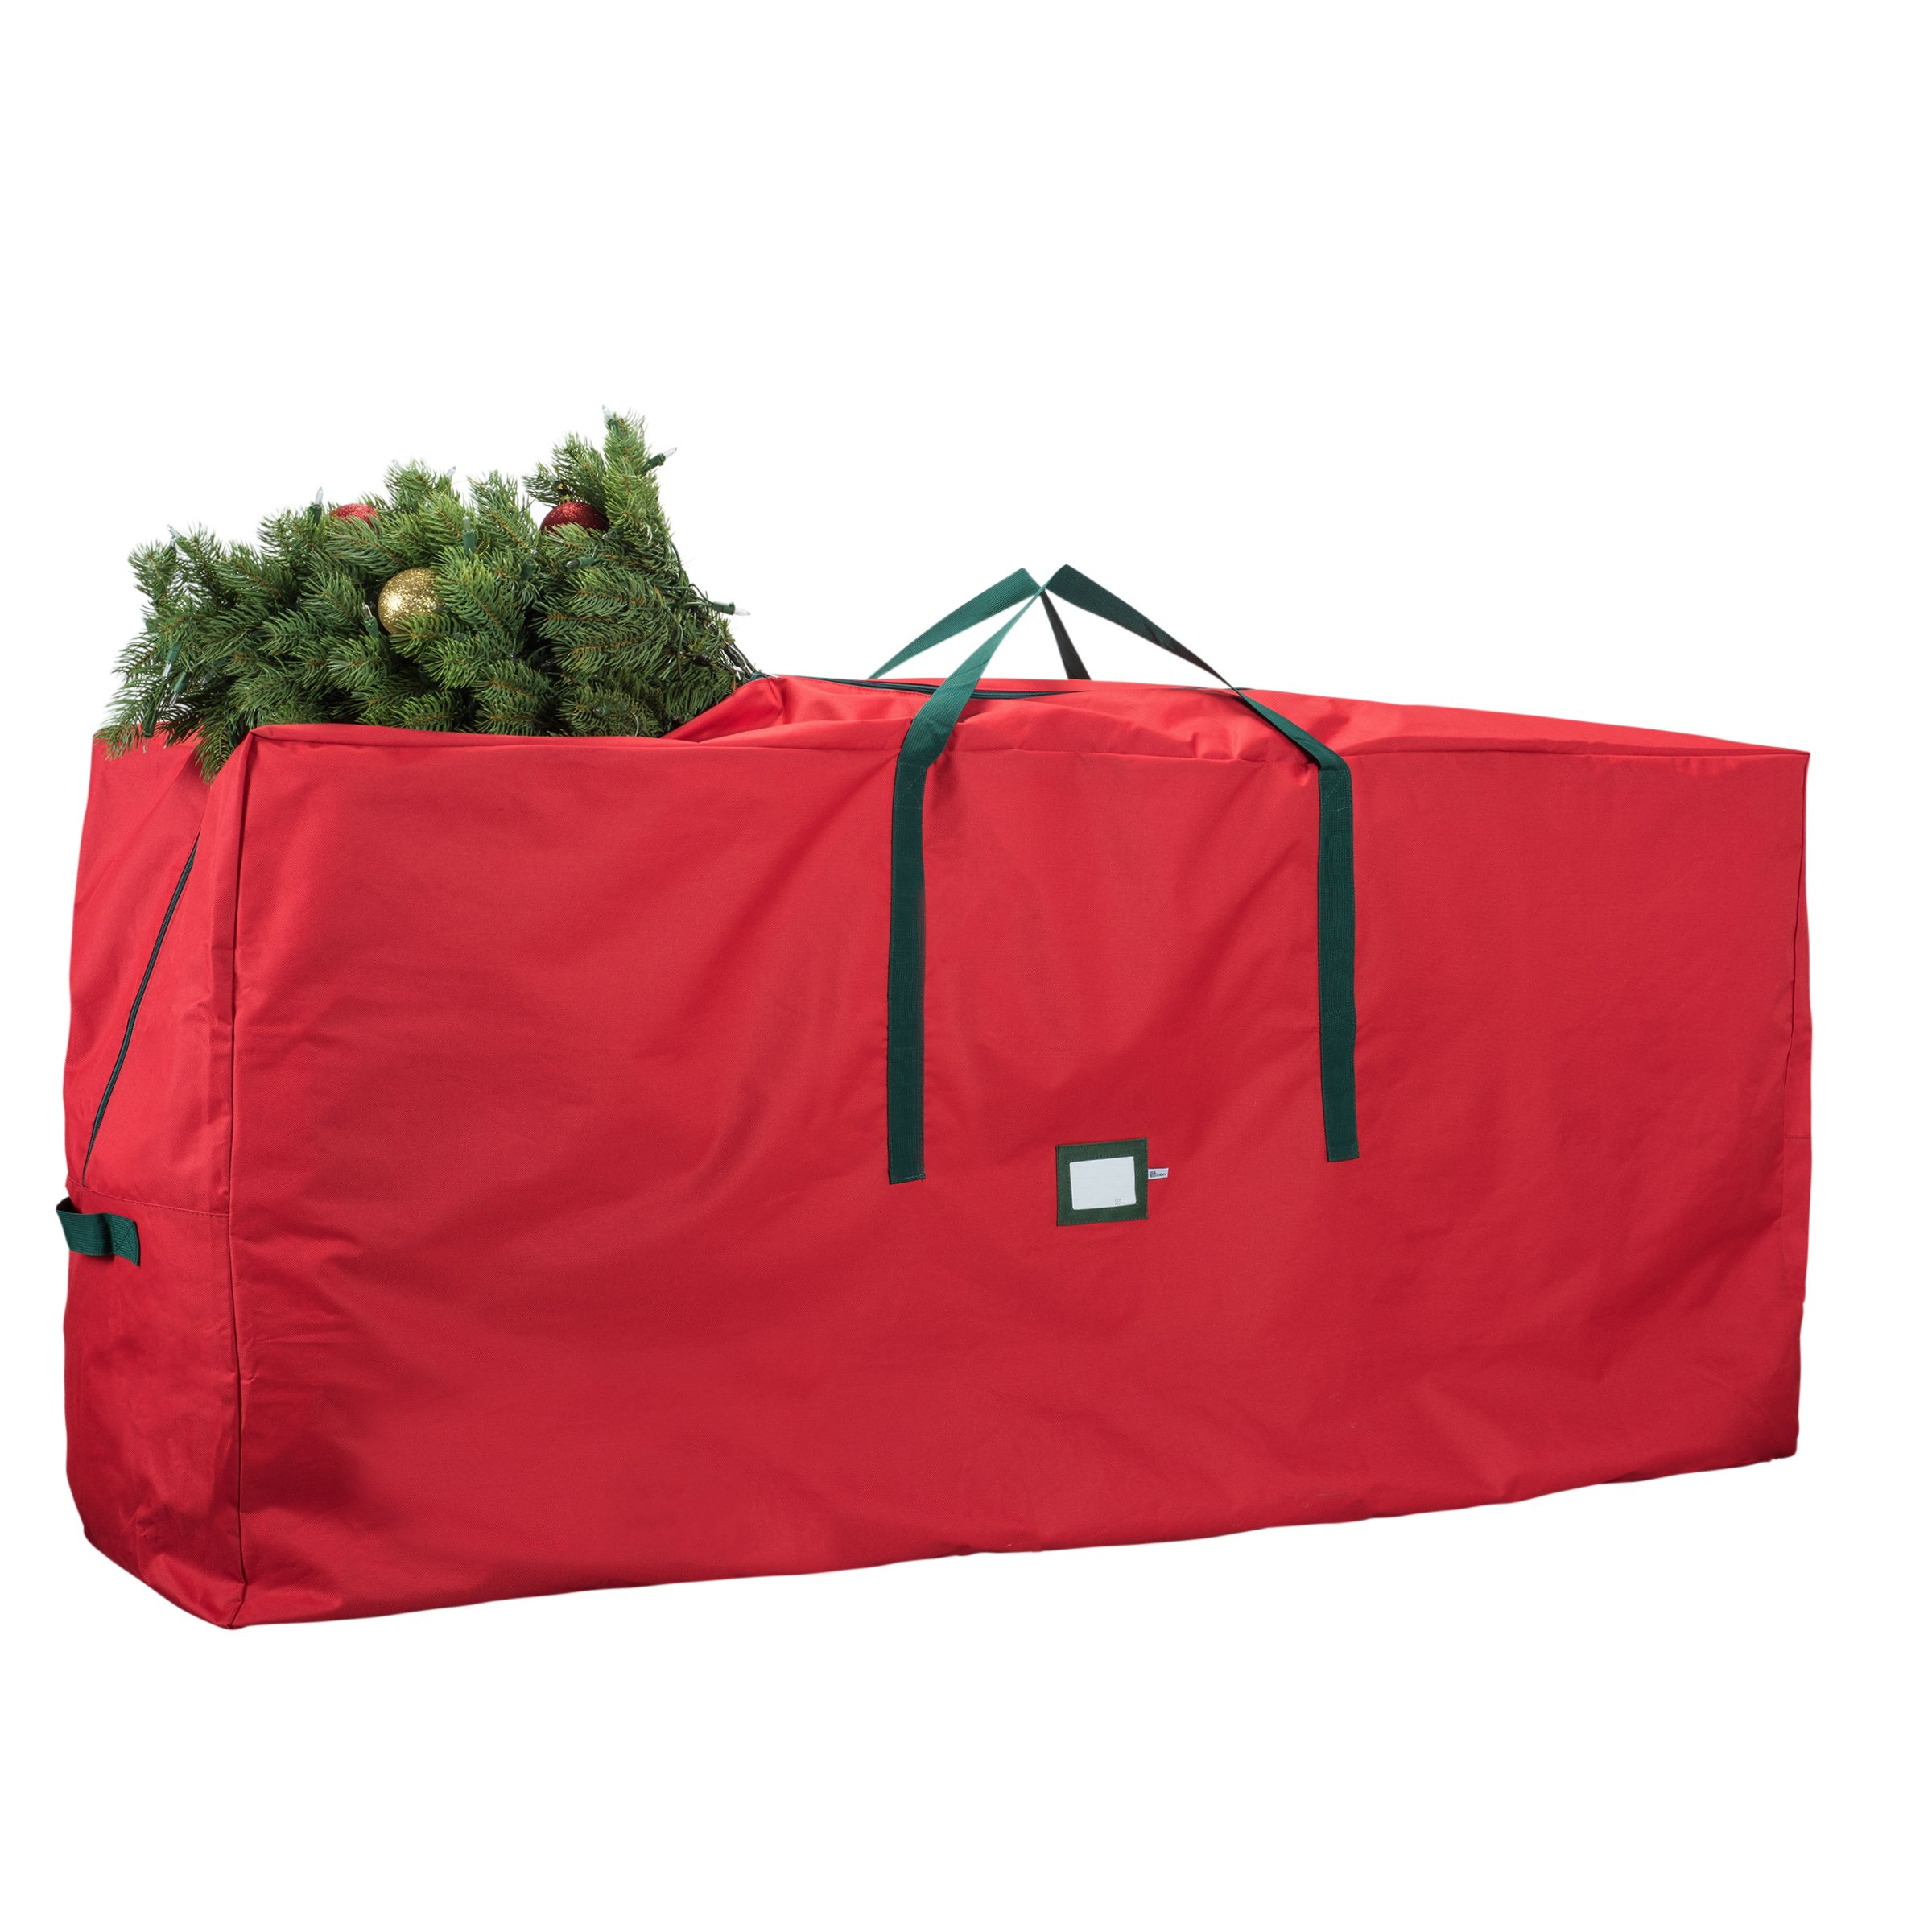 """ZOBER Christmas Tree Storage Bag - Premium 600D Polyester Artificial Christmas Tree Storage Bag for Christmas Tree up to 7 ft Tall with High Performance Zipper 48"""" x 15"""" x 20"""" Red"""